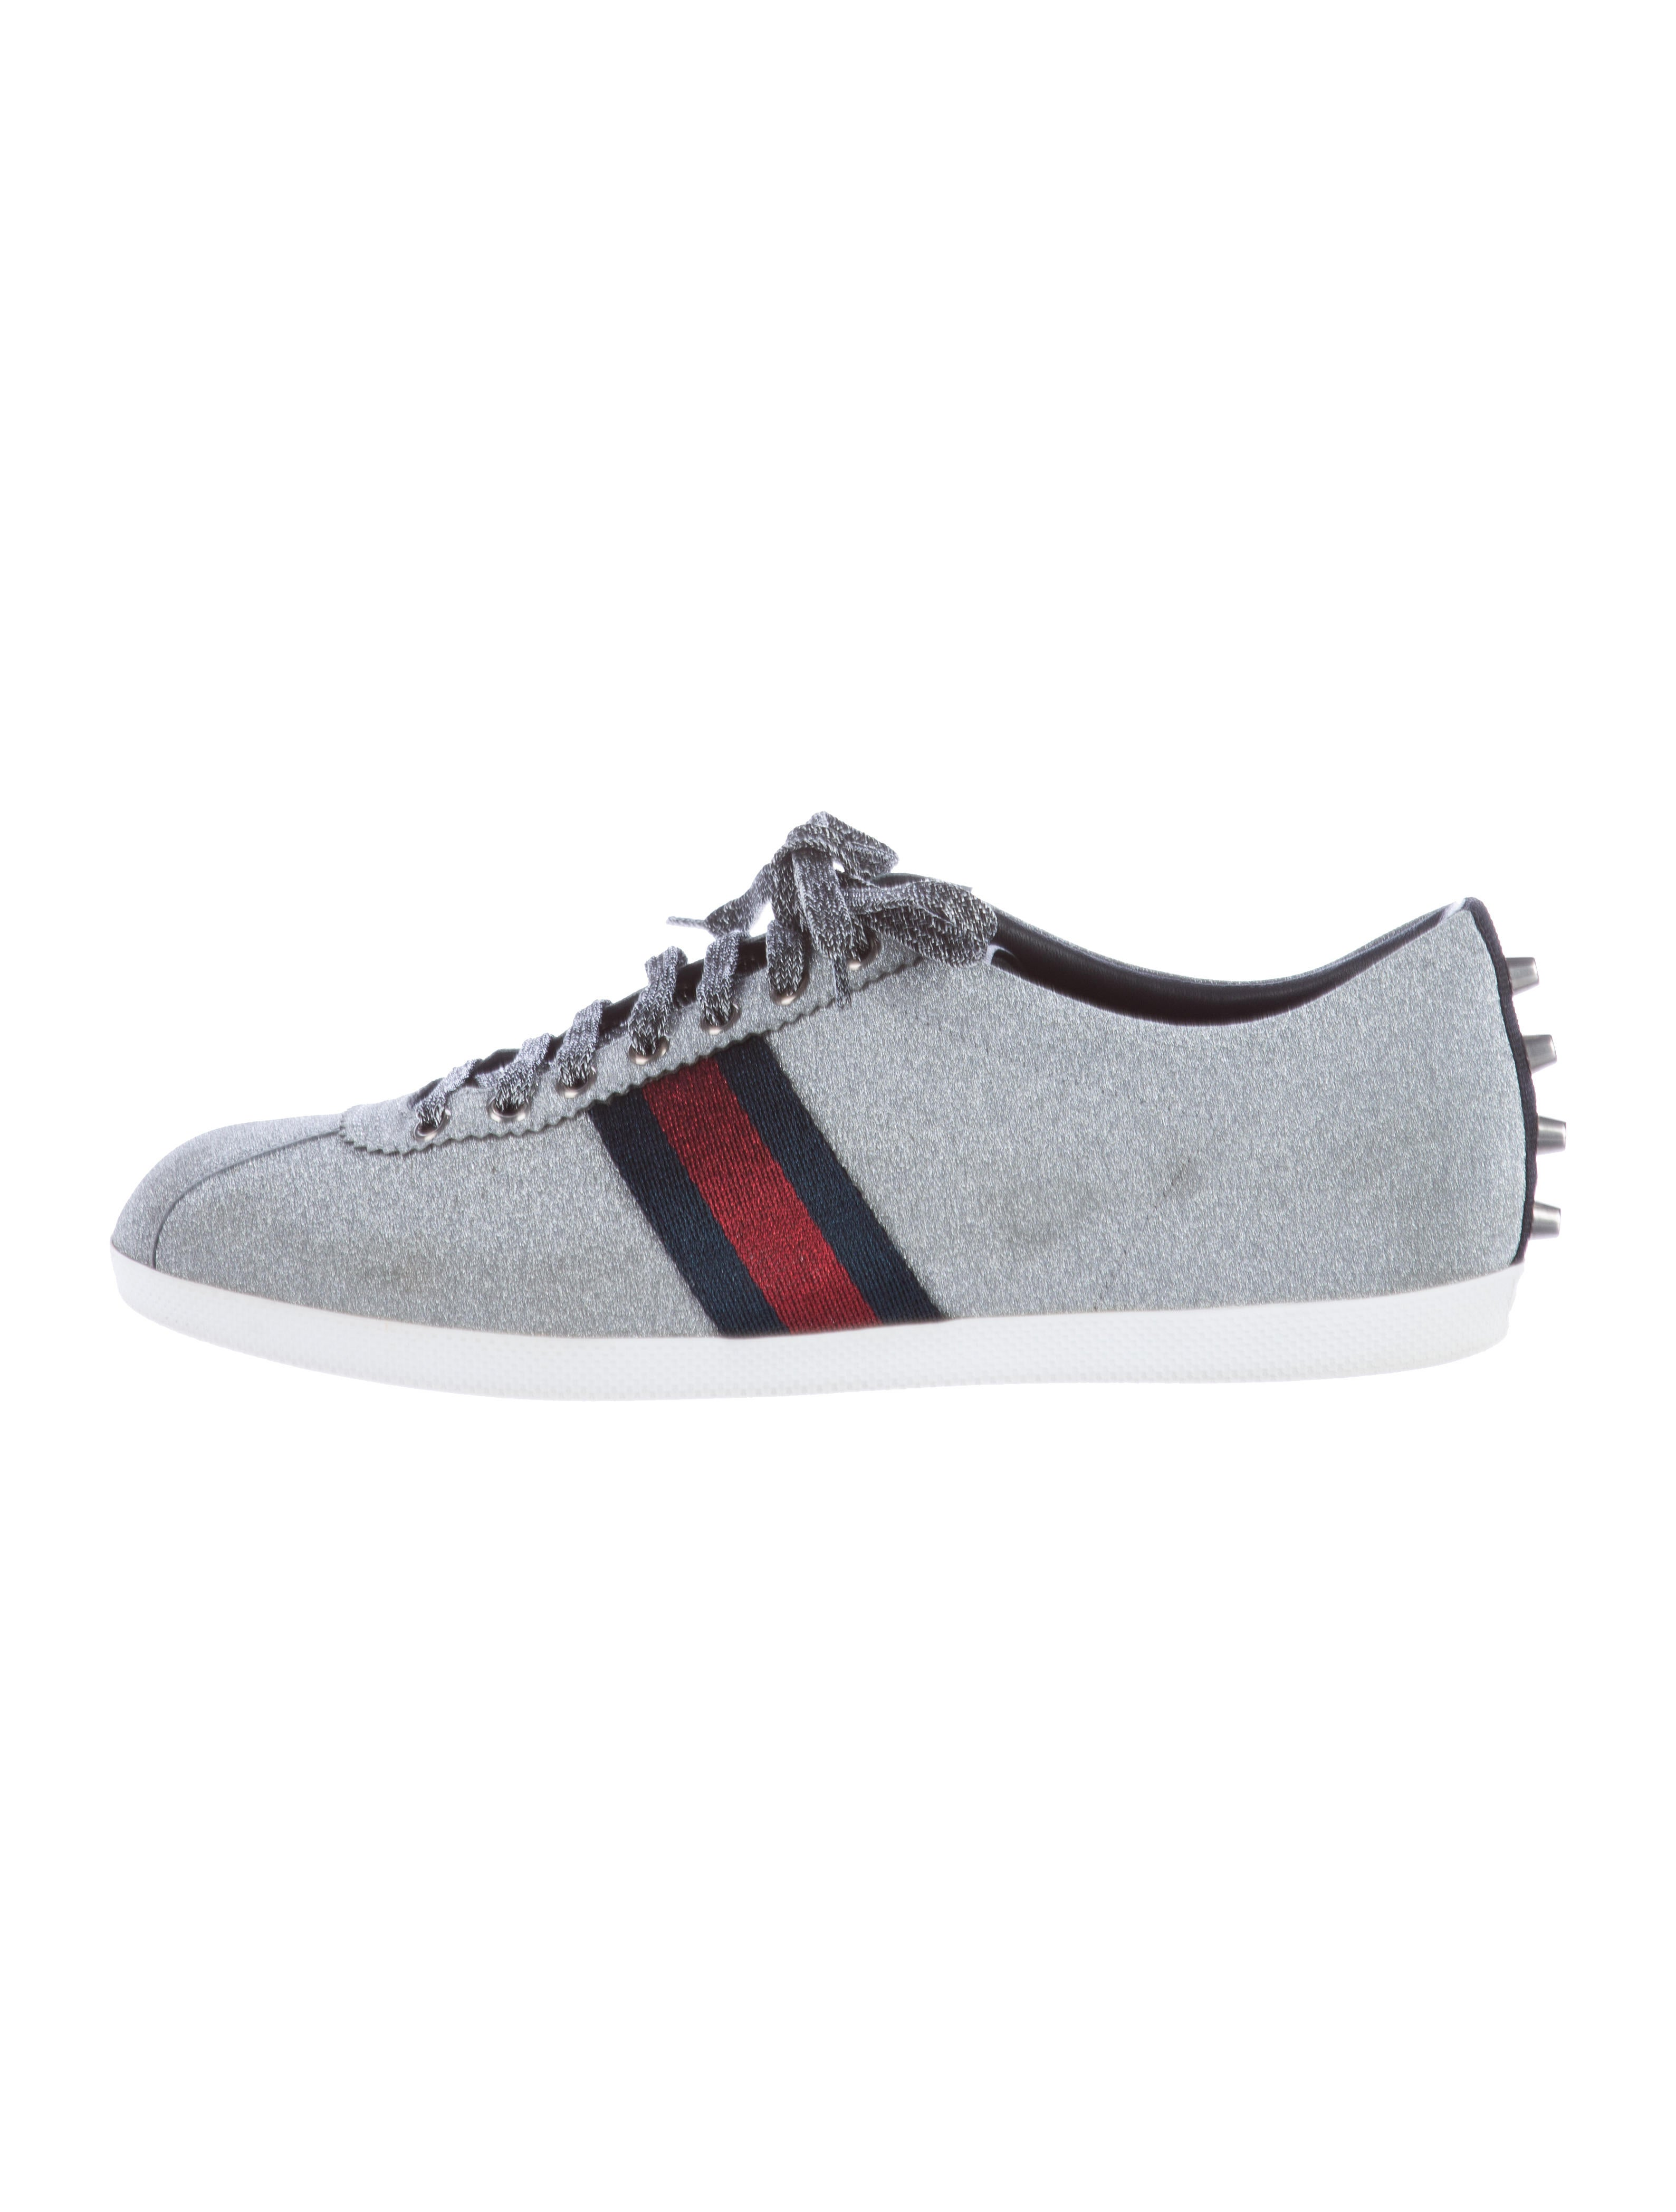 a9338d2ef78 Gucci Bambi Glitter Sneakers - Shoes - GUC119331